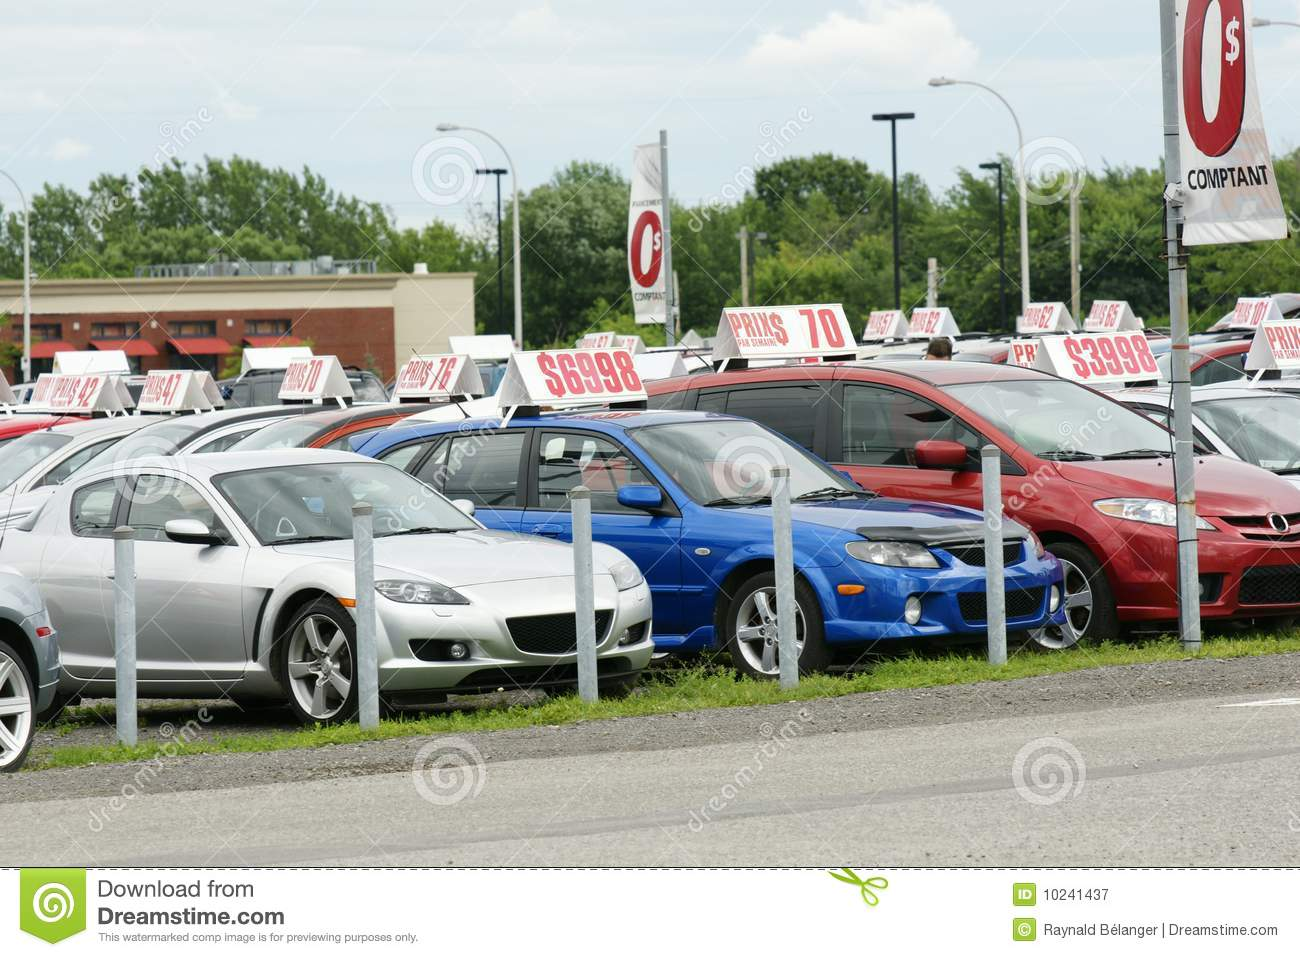 Used cars for sale stock image. Image of lease, drive - 10241437